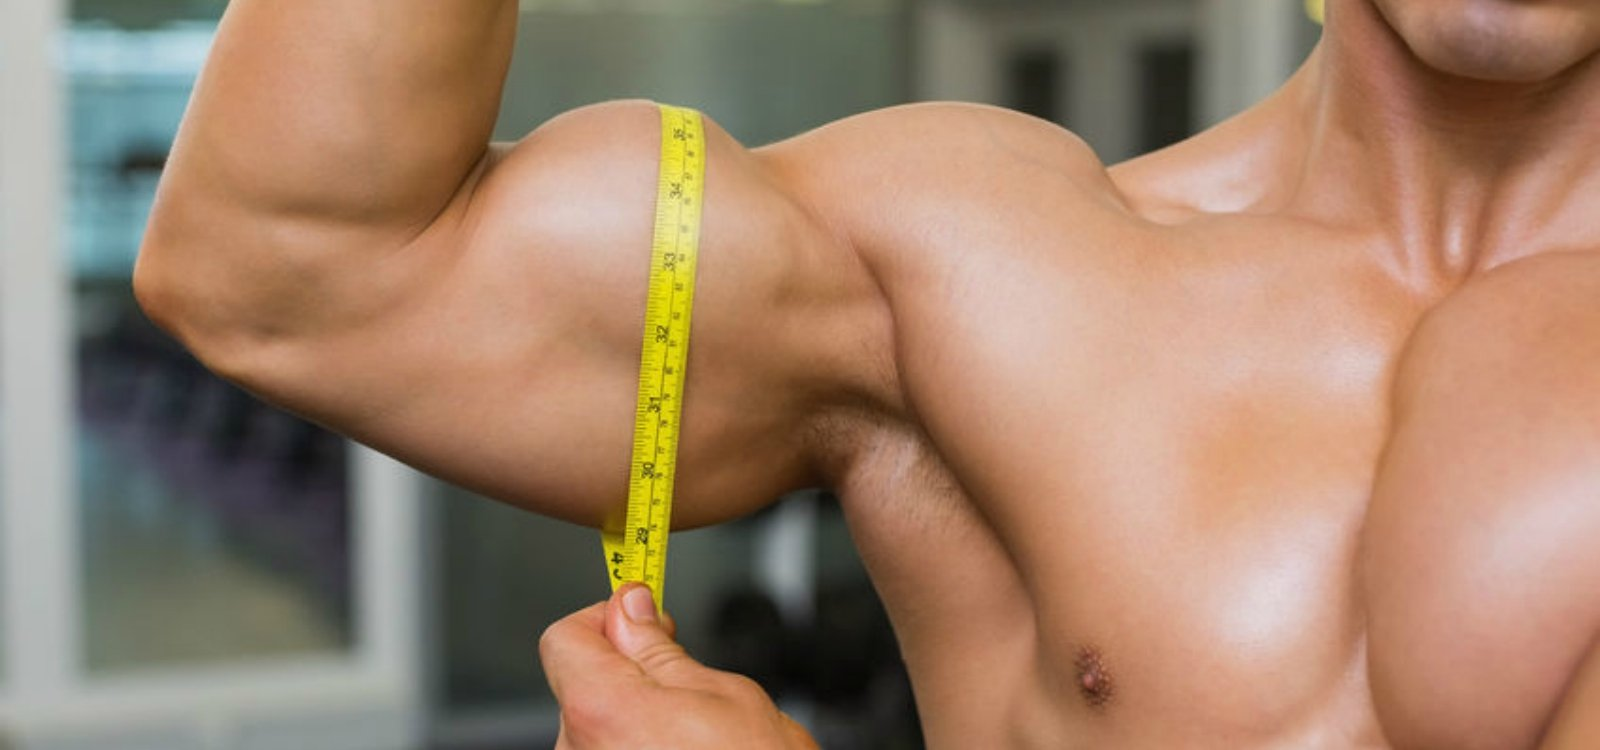 how long does it take to lose muscle if you stop working out